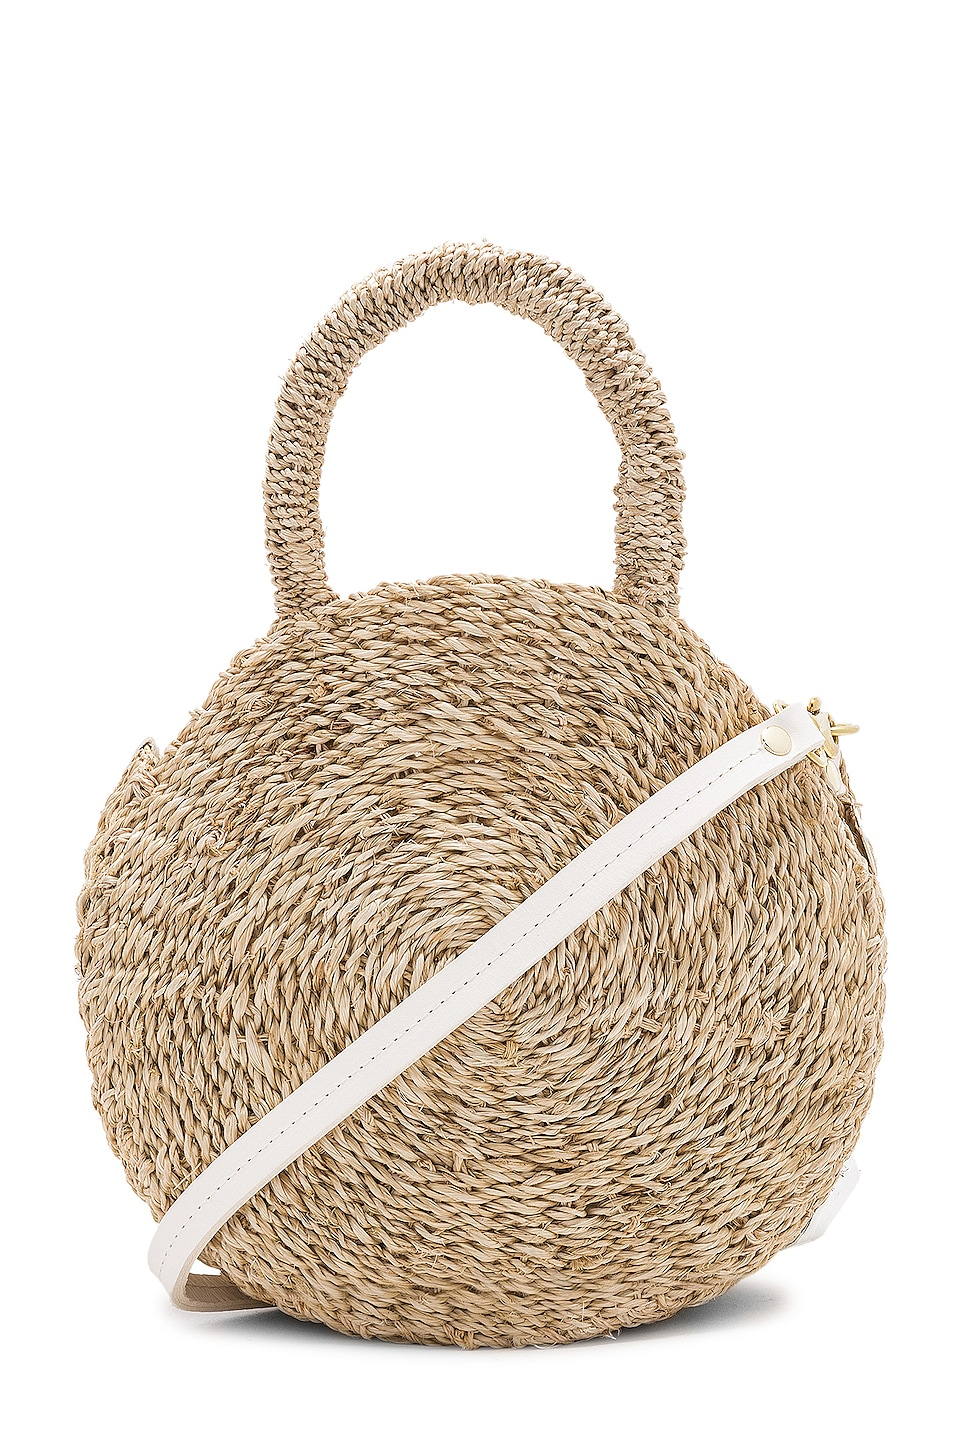 Clare V. Petite Maison Alice Bag in Cream Woven